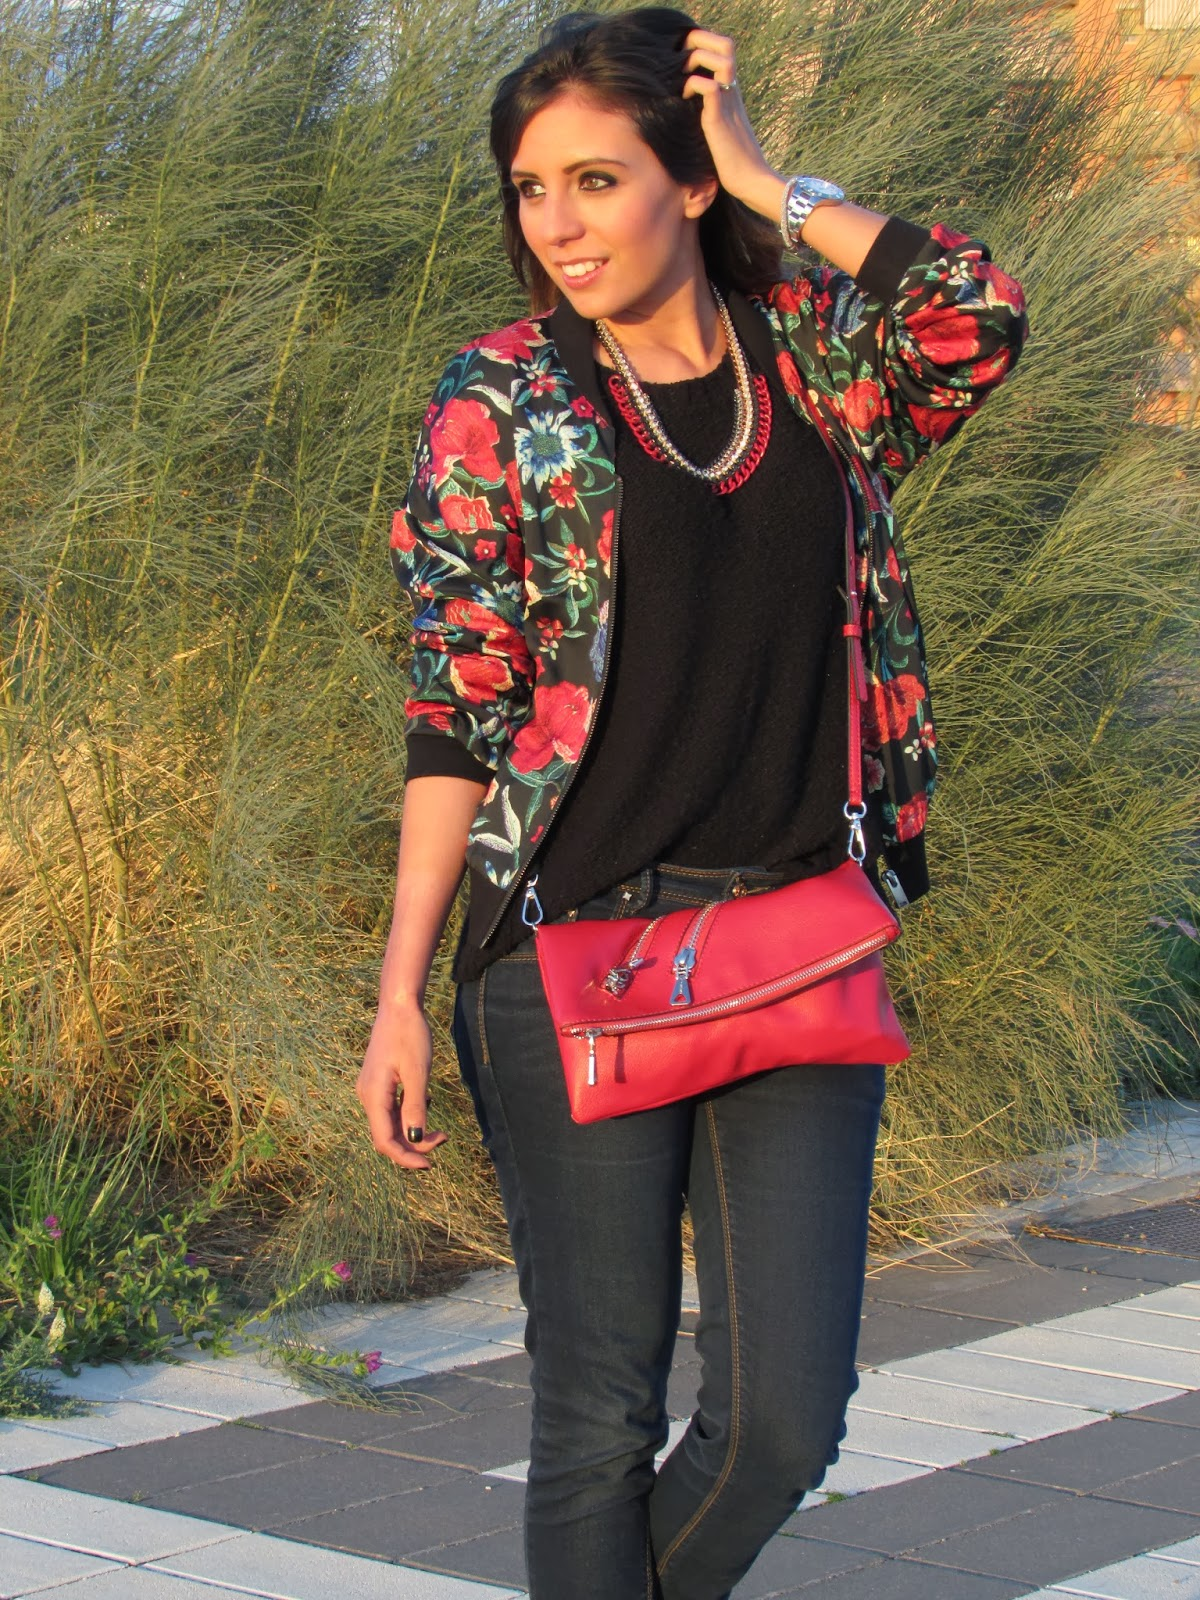 street style fashion blogger cristina style blog moda tendencias ootd outfit look teen vogue malaga malagueña